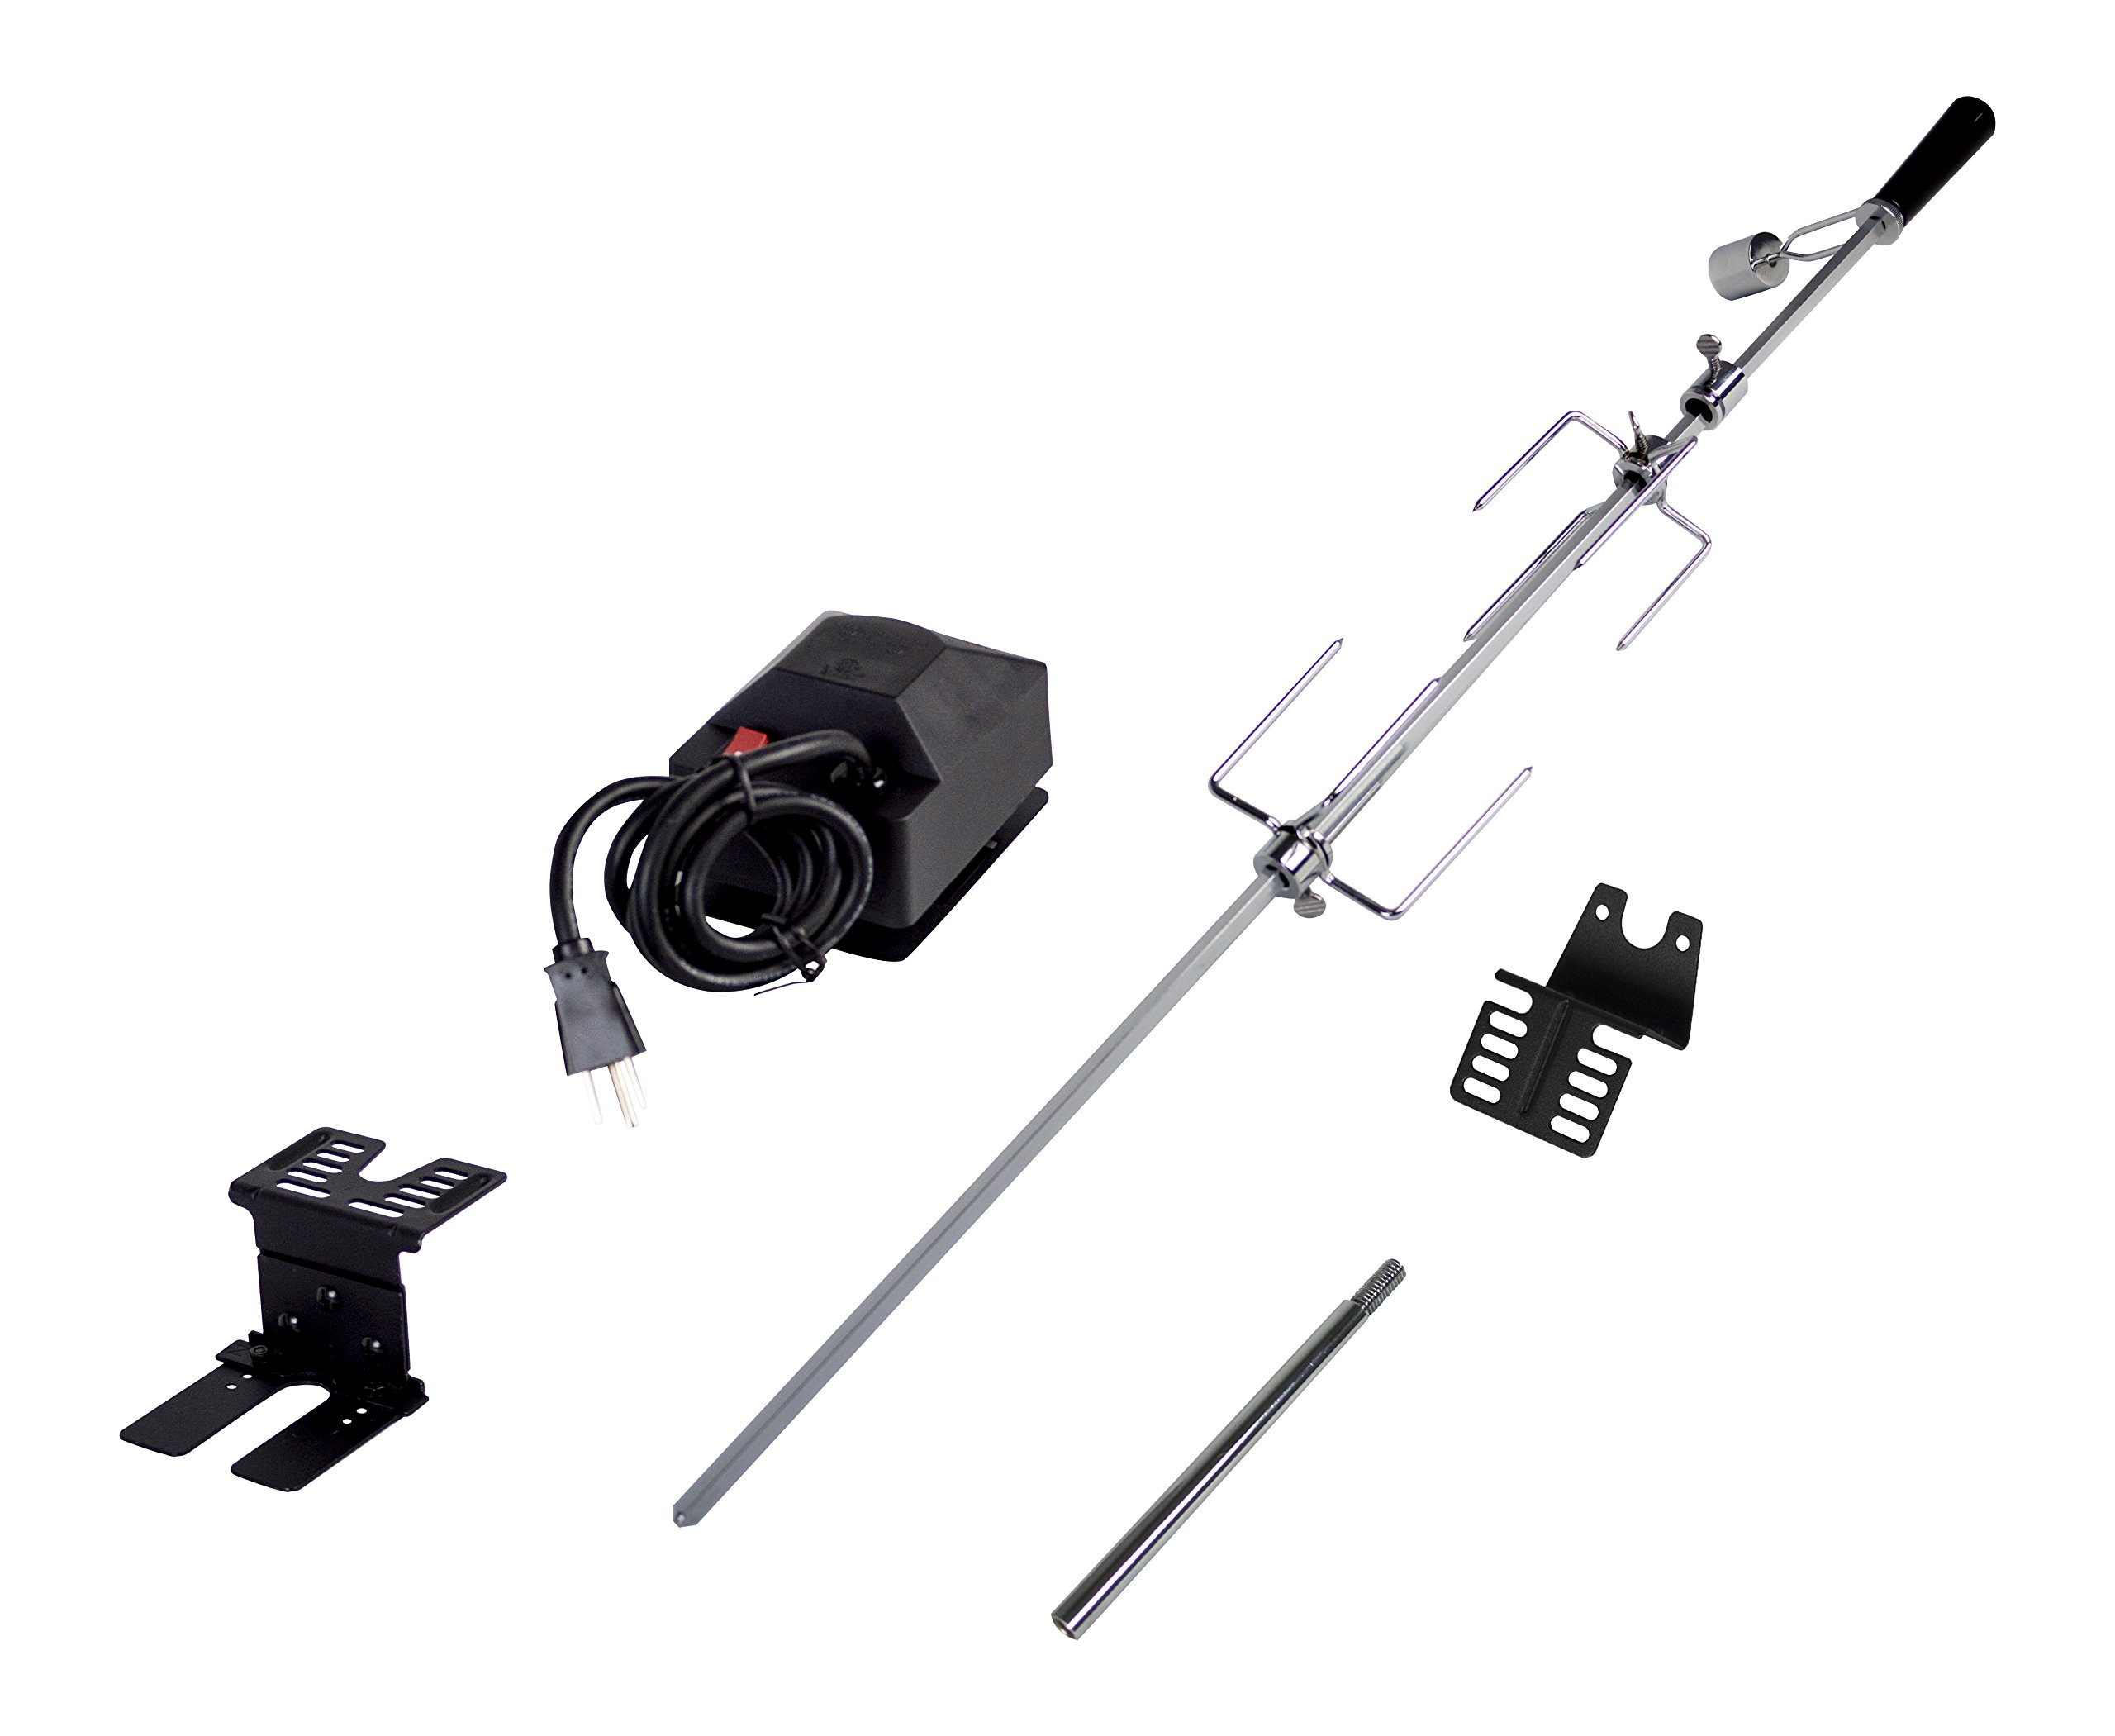 Dyna-Glo Universal Deluxe Rotisserie Kit for Grills by Dyna-Glo